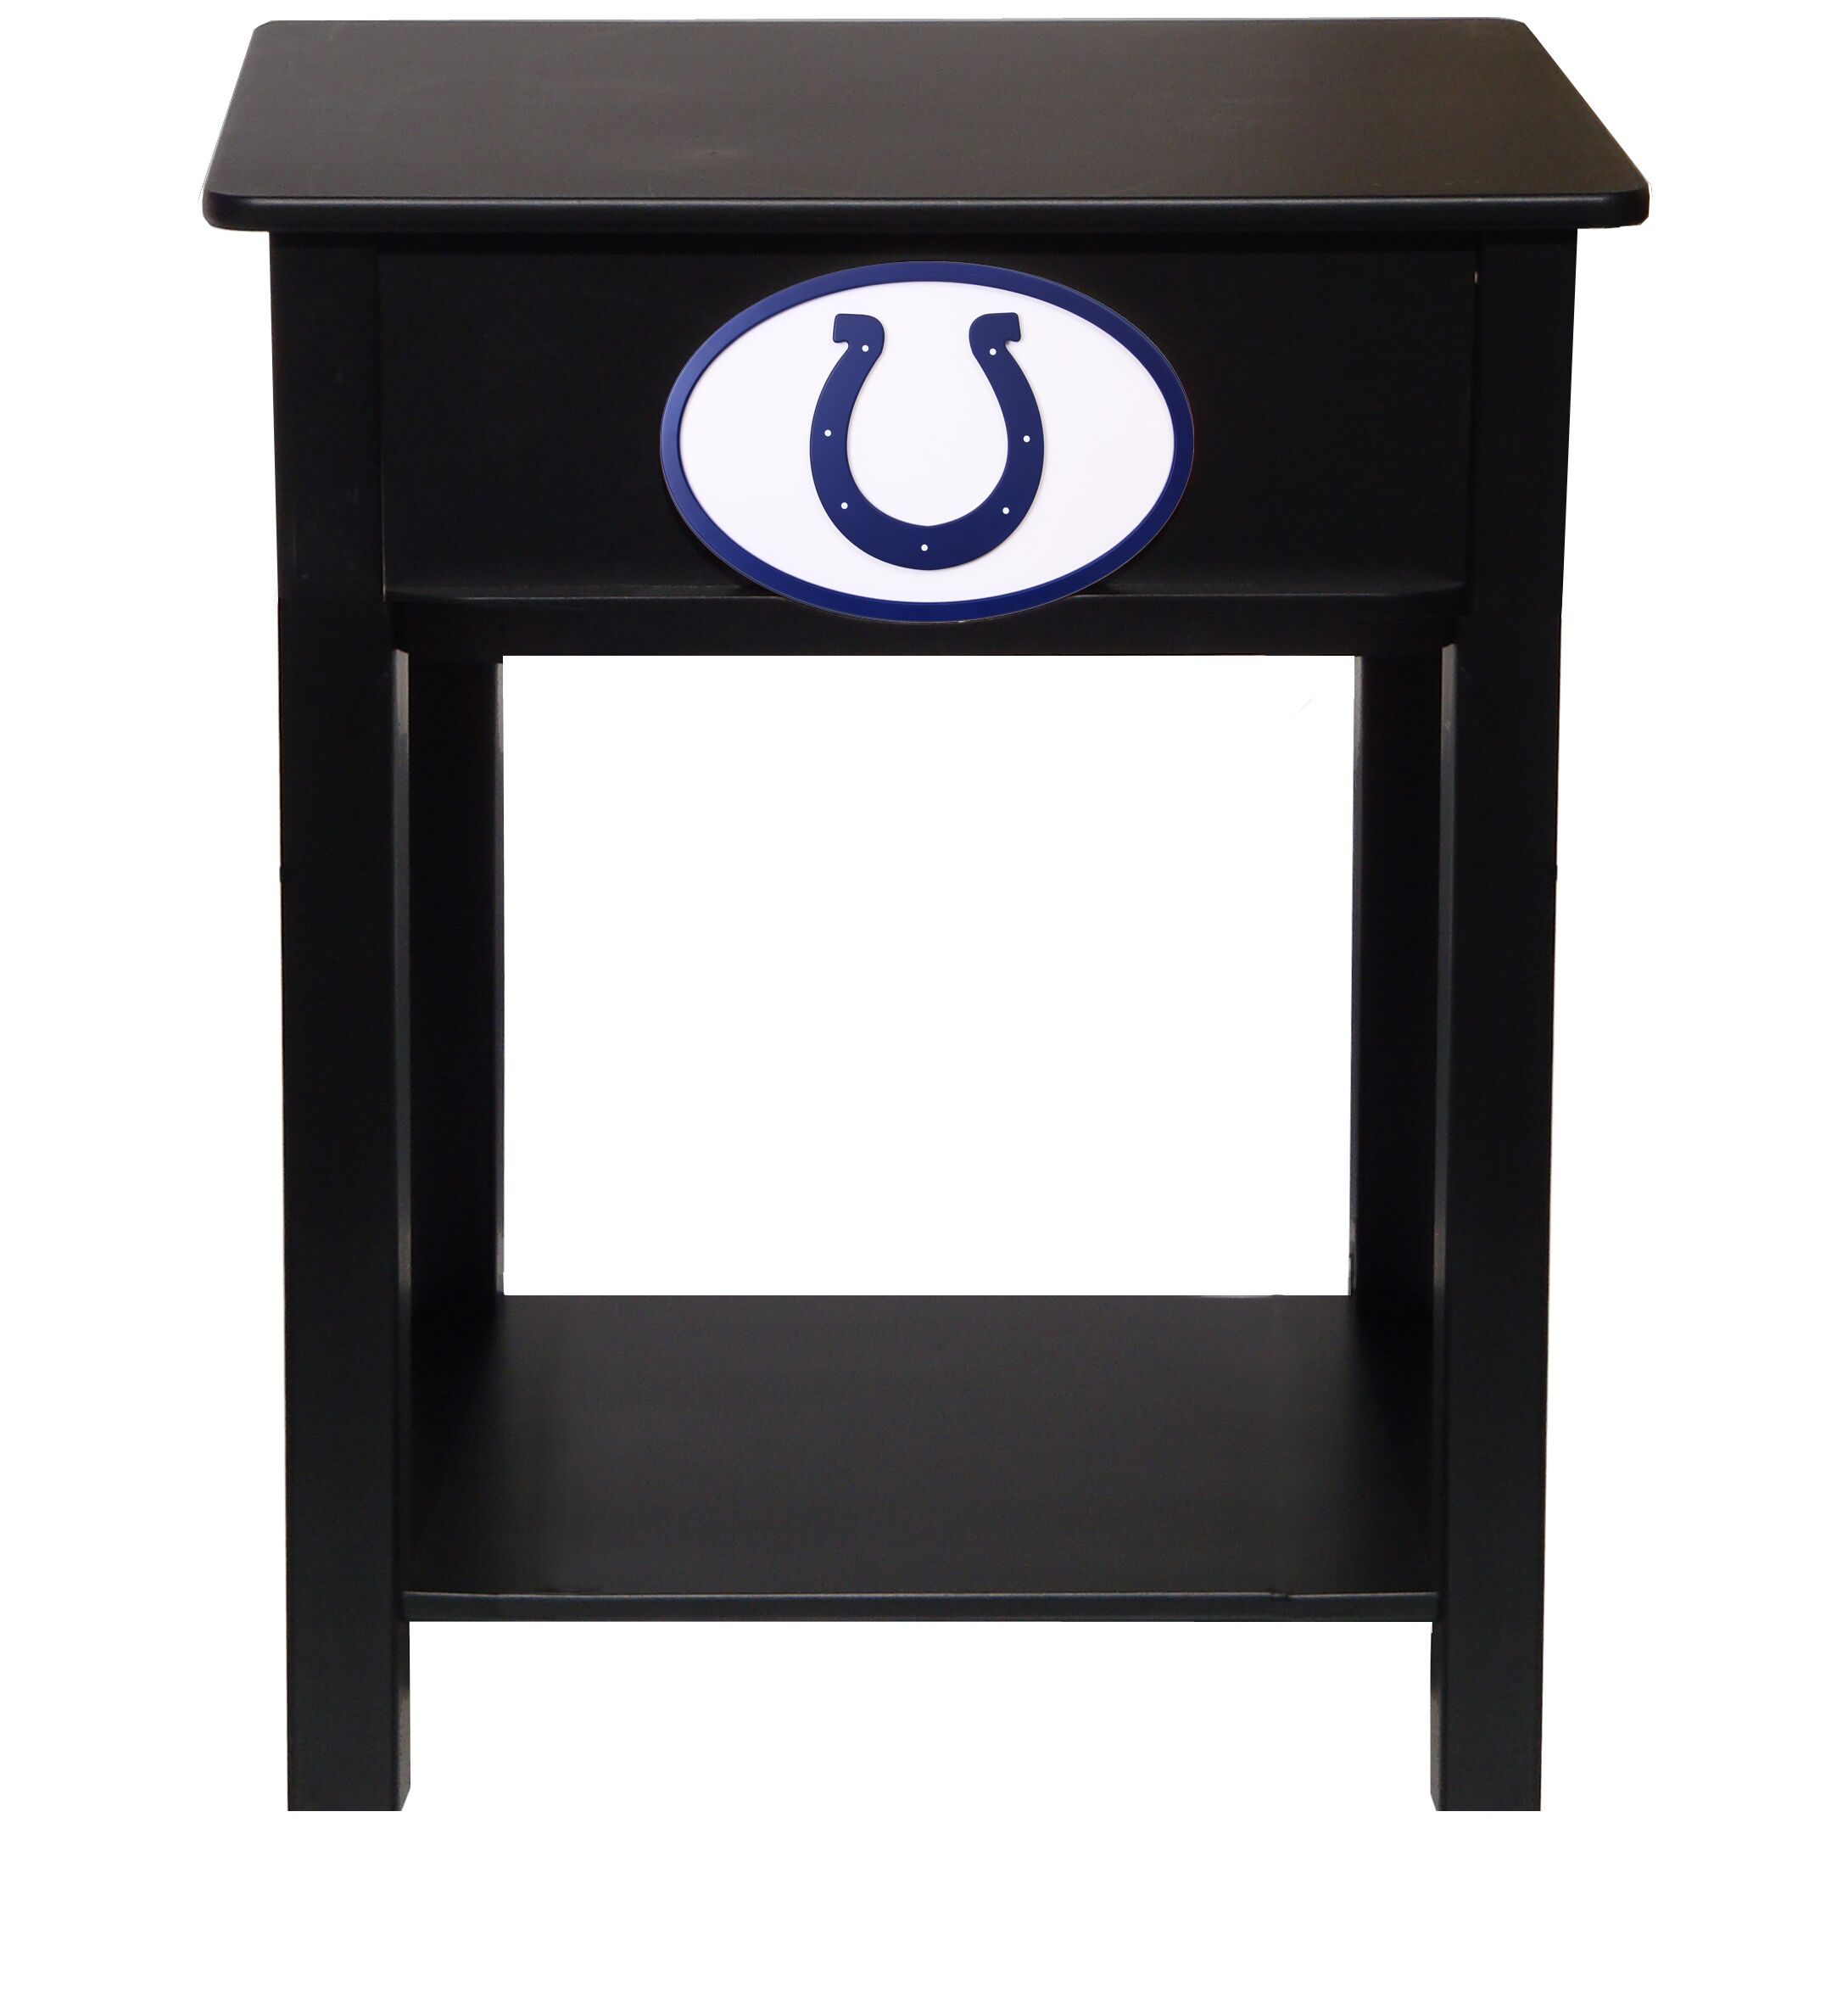 Nfl End Table With Storage NFL Team: Indianapolis Colts